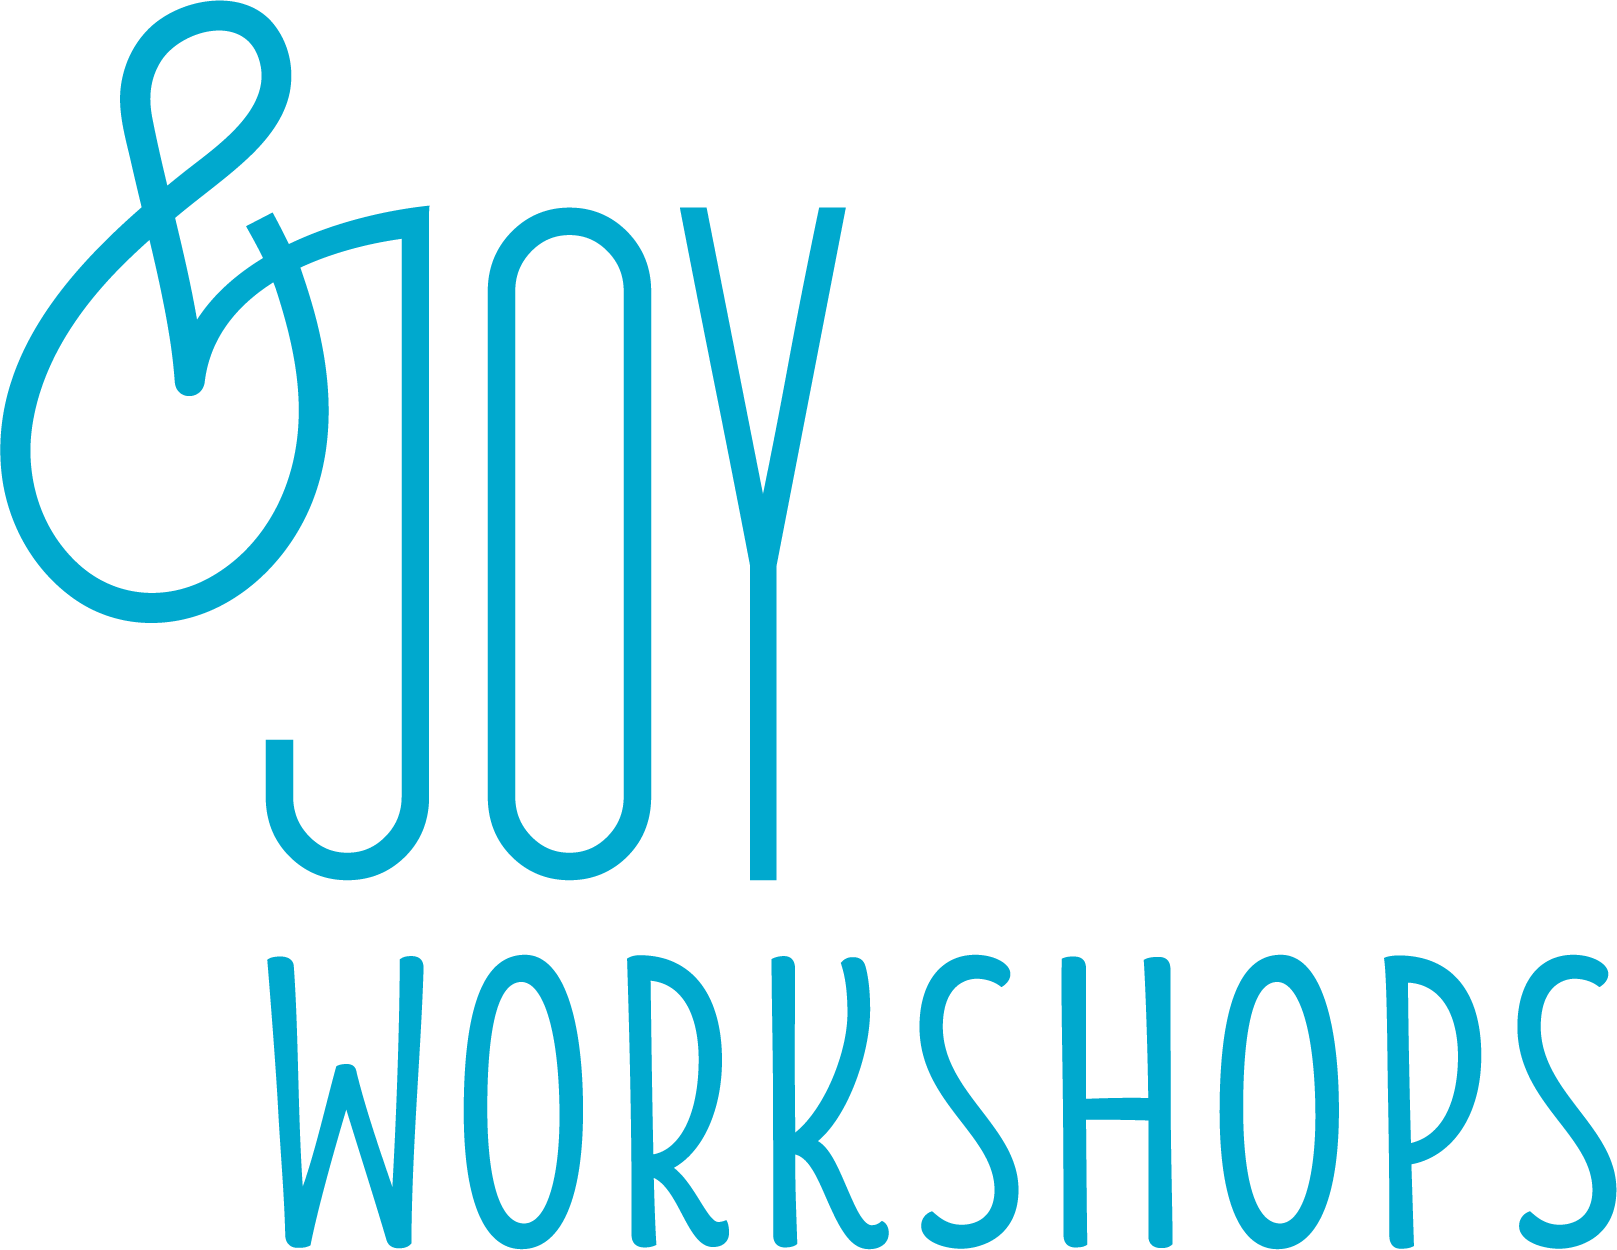 JOY titellogo WORKSHOPS web